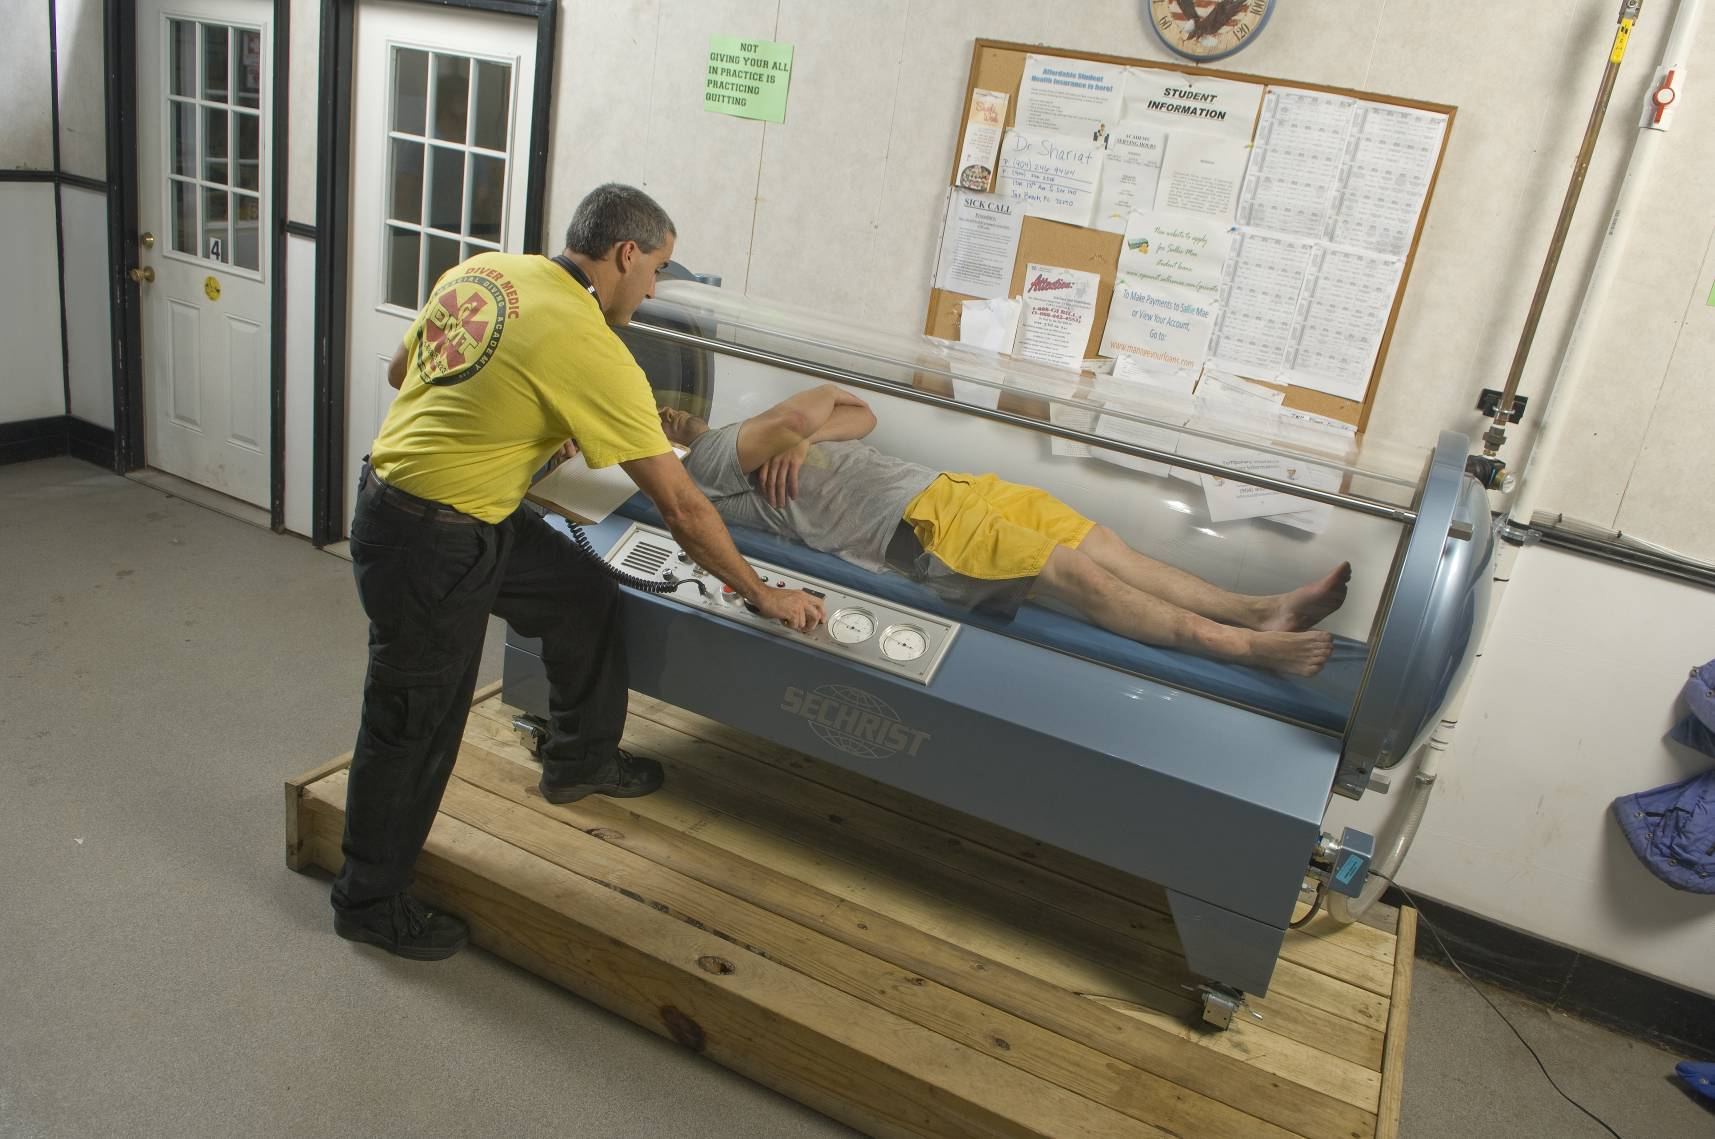 Hyperbaric technician cda advanced training electives cda hyperbaric medical therapy and training at at cda technical institute 1betcityfo Choice Image